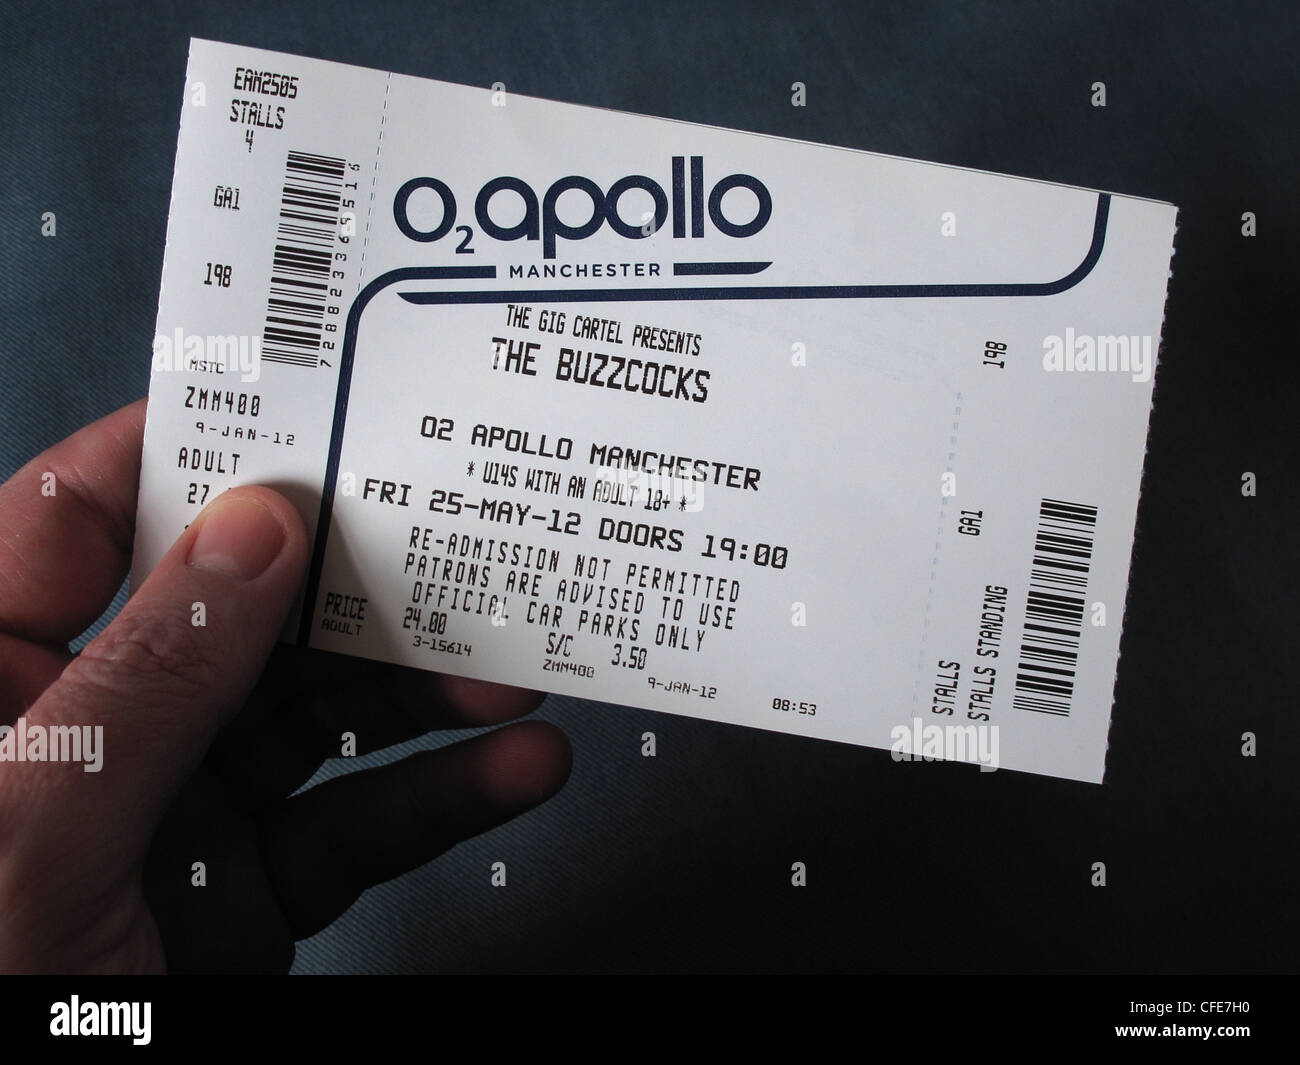 Buzzcocks,concert,ticket,for,Manchester,Apollo,25th,May,2012,with,Howard,Devoto,held,in,an,hand,gotonysmith,historic,gig,live,reunion,re-union,re,union,standing,seated,venue,gig,cartel,O2,stalls,Greater,Uni,Academy,Roadhouse,Night,and,Day,&,Ruby,lounge,high,price,prices,commission,Ticketline,Online Ticketmaster ticketting,gotonysmith,Buy Pictures of,Buy Images Of